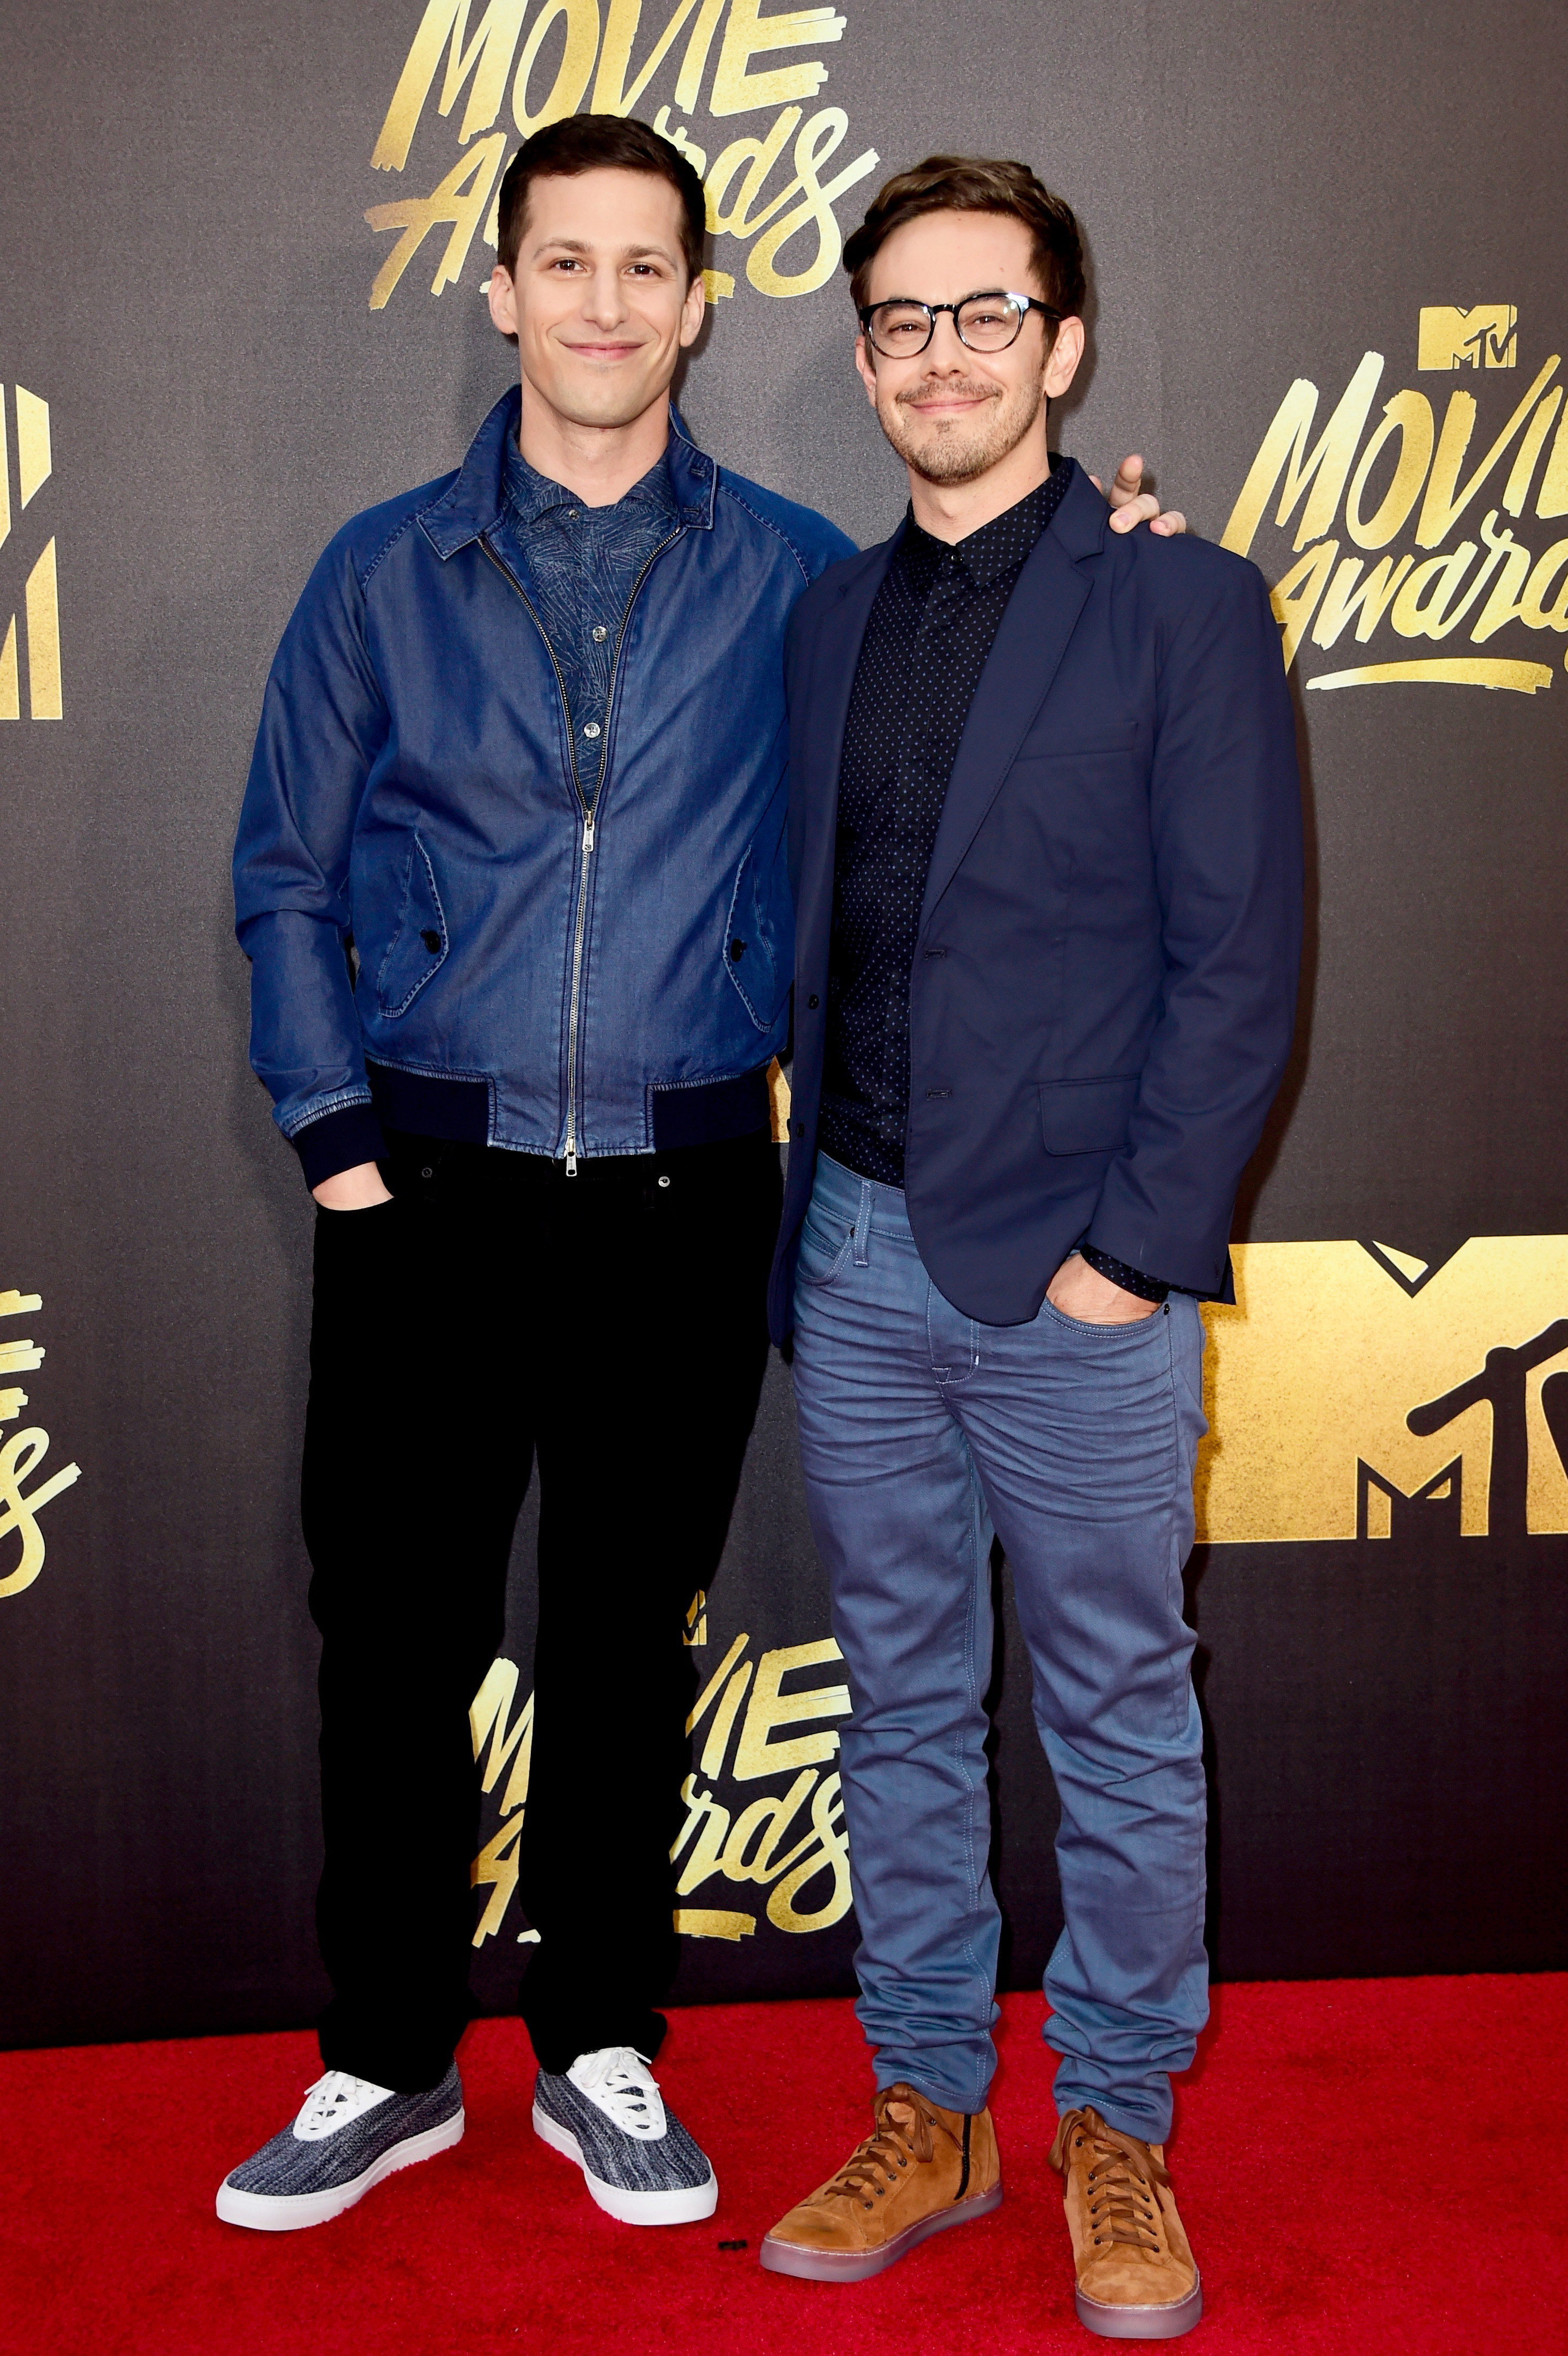 Andy Samberg and Jorma Taccone of The Lonely Island attend the 2016 MTV Movie Awards at Warner Bros. Studios on April 9, 2016 in Burbank, Calif.